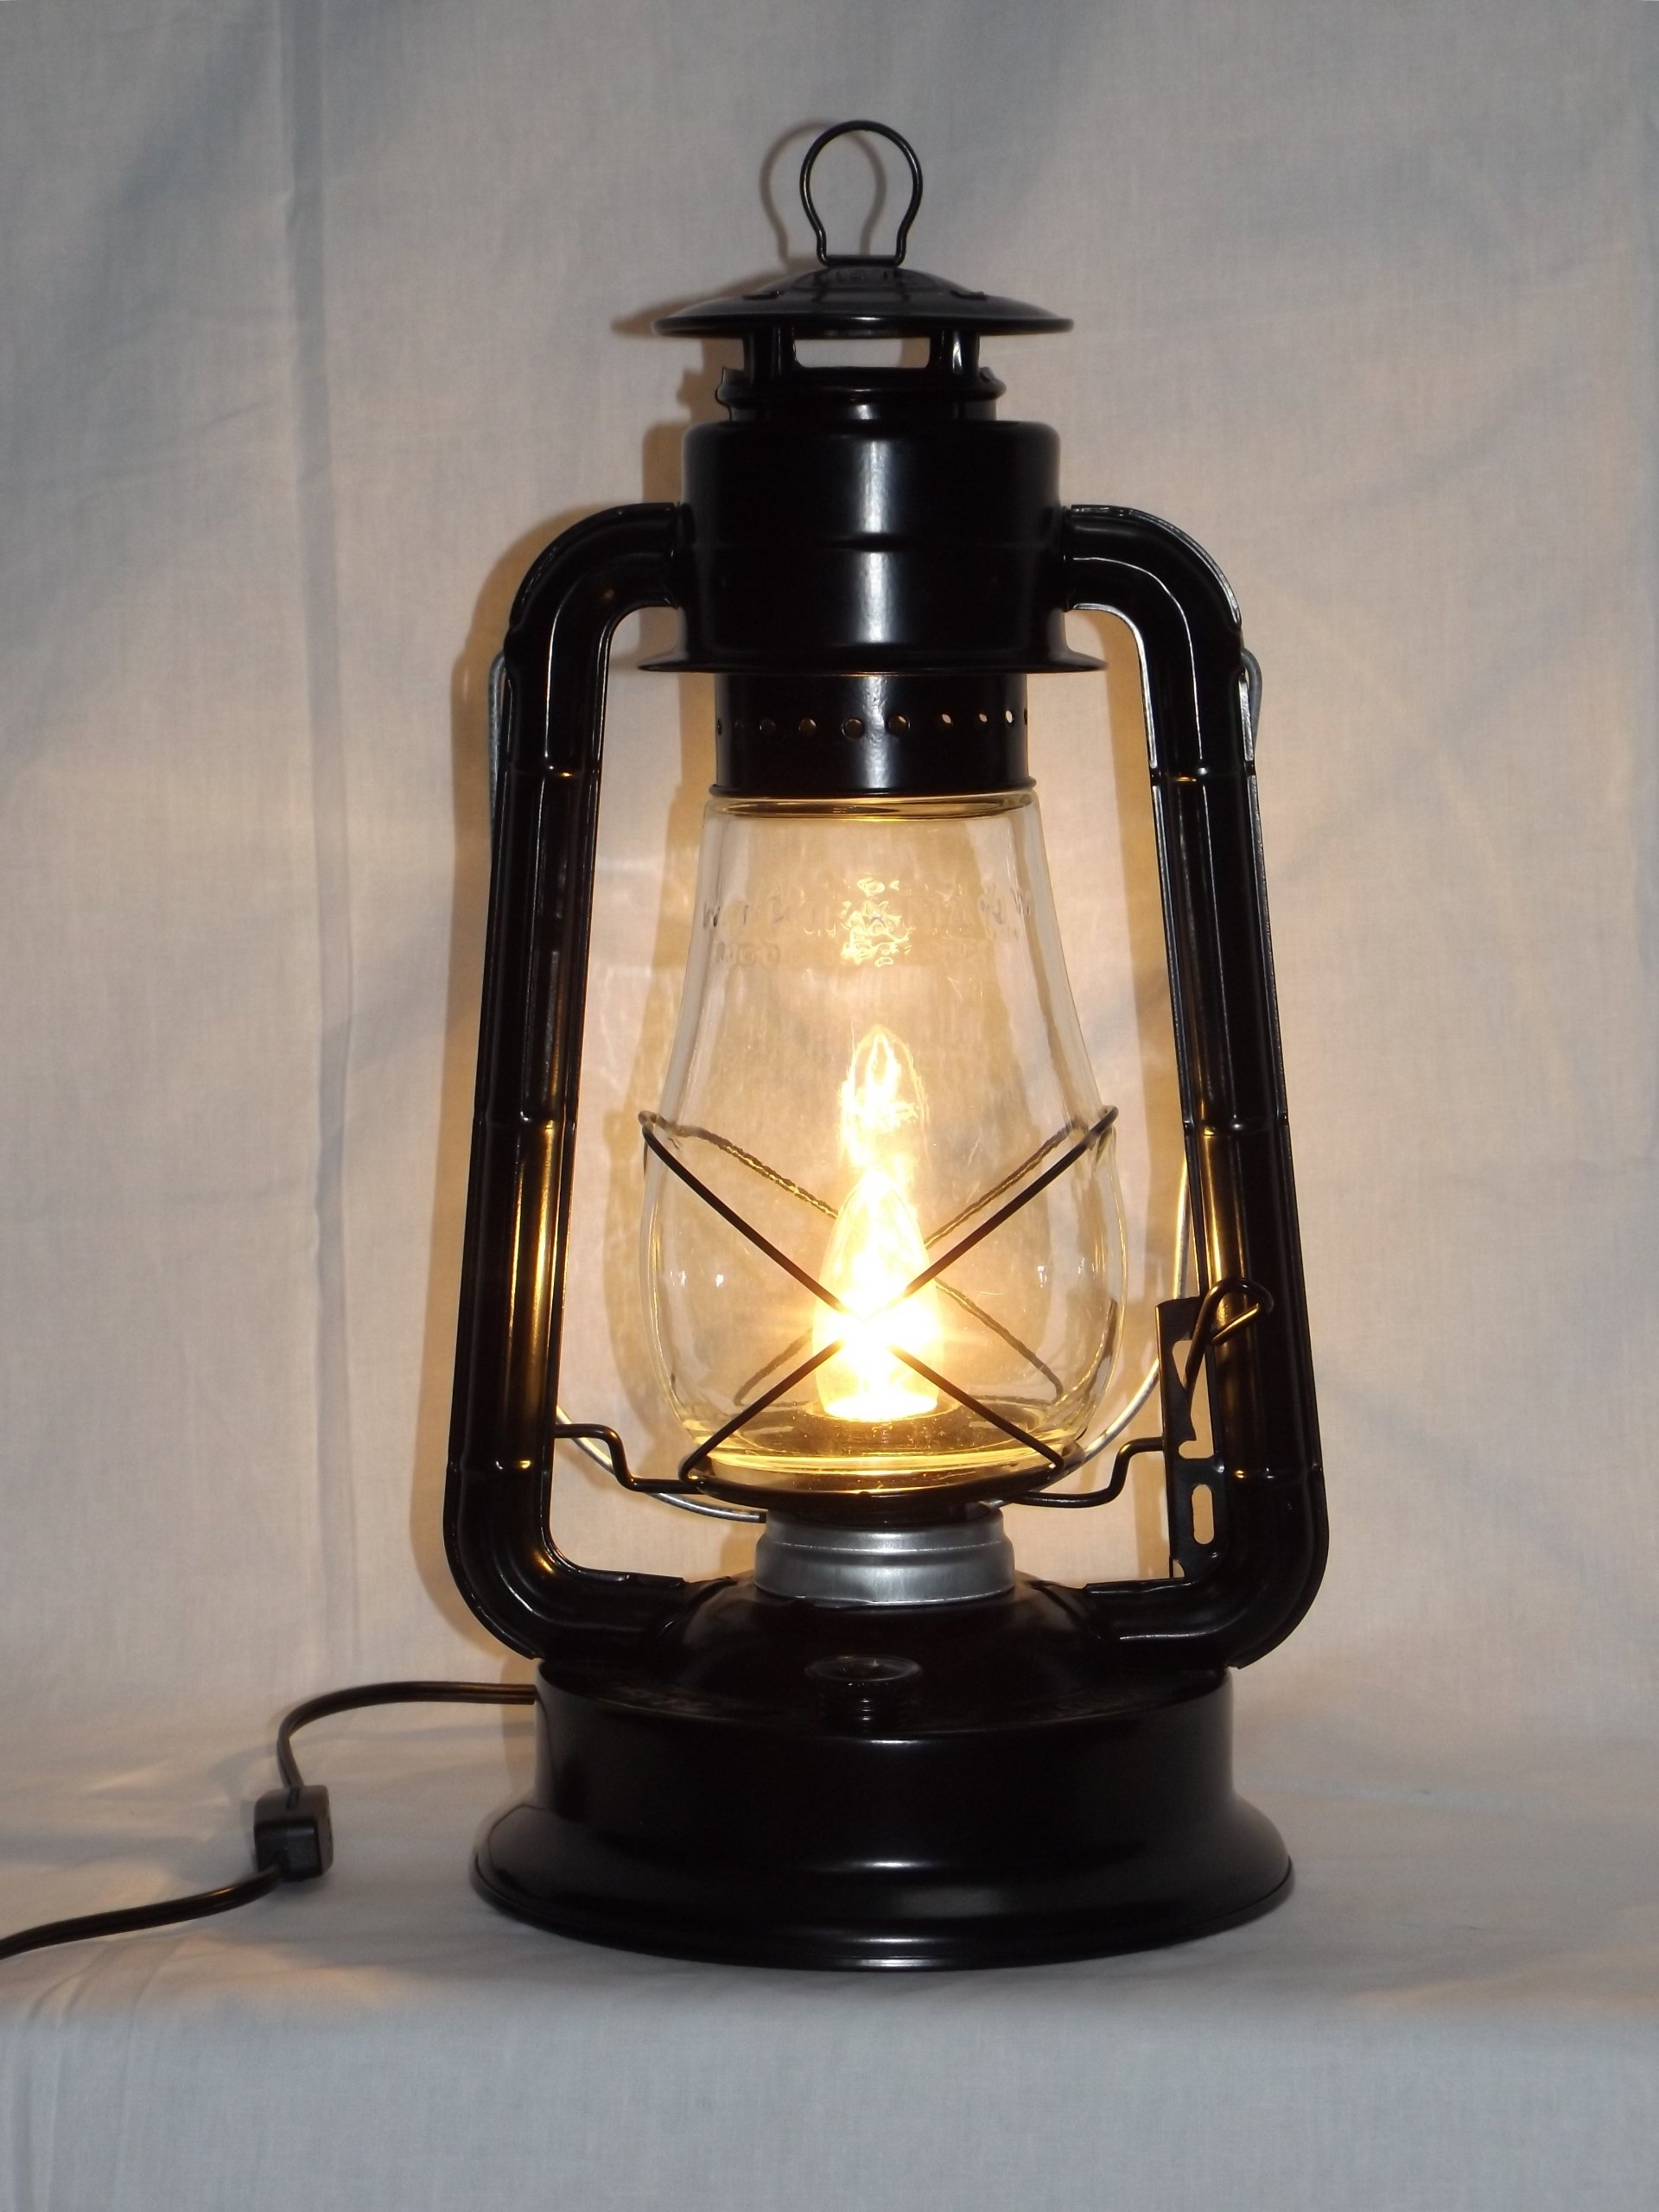 Electric Lantern Table Lamps Ideas On Foter